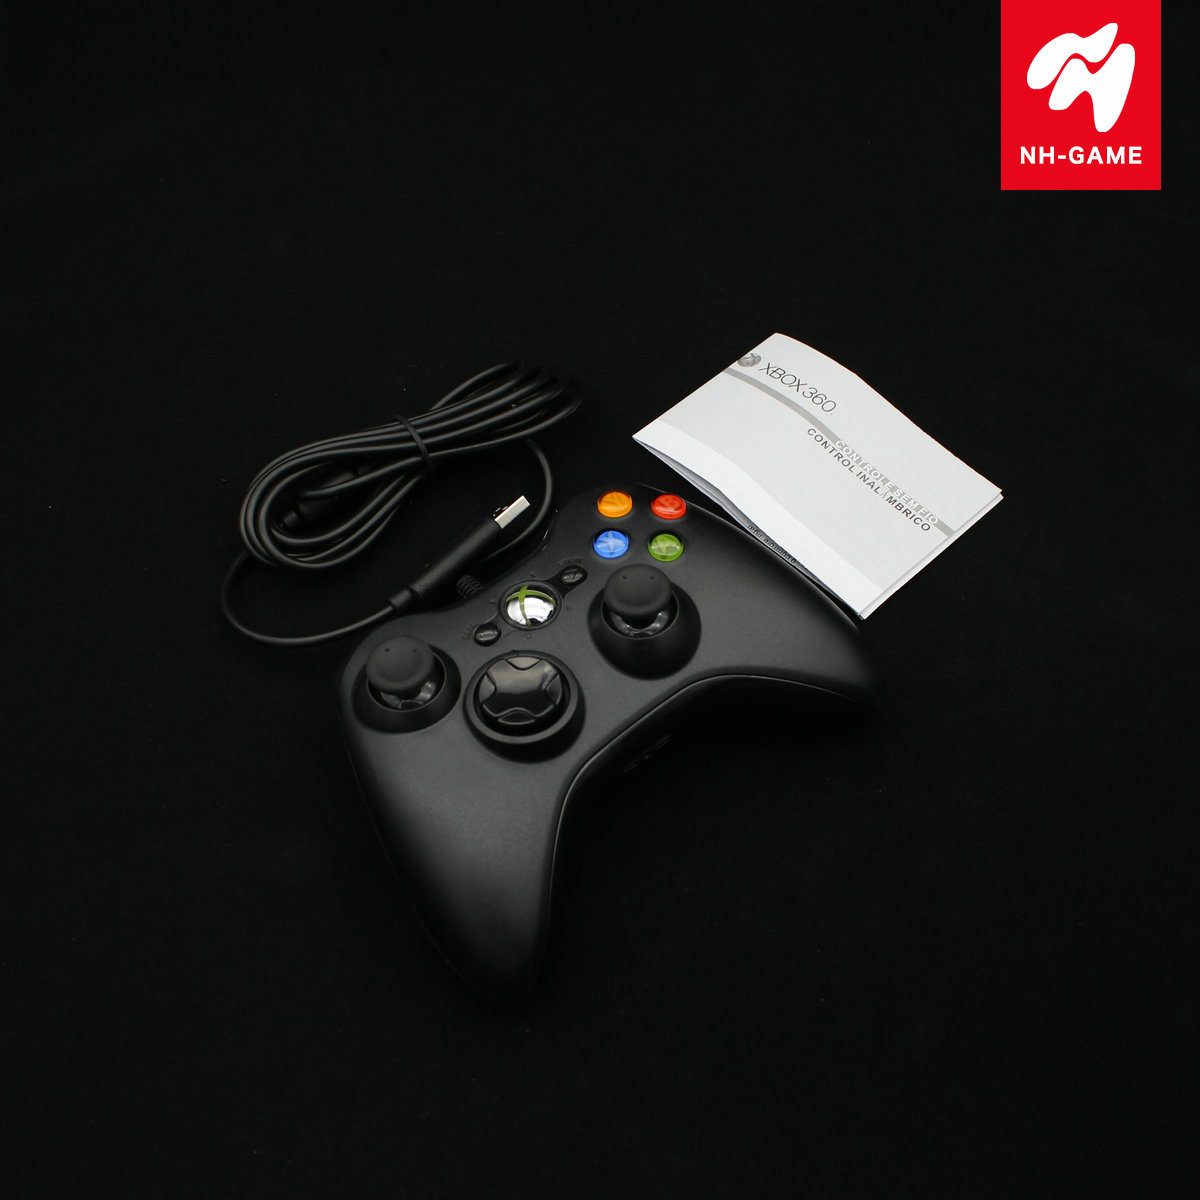 Tay cầm chơi game  BOX360 cable handle PC computer game handle with vibration XBOX360 handle Slim f